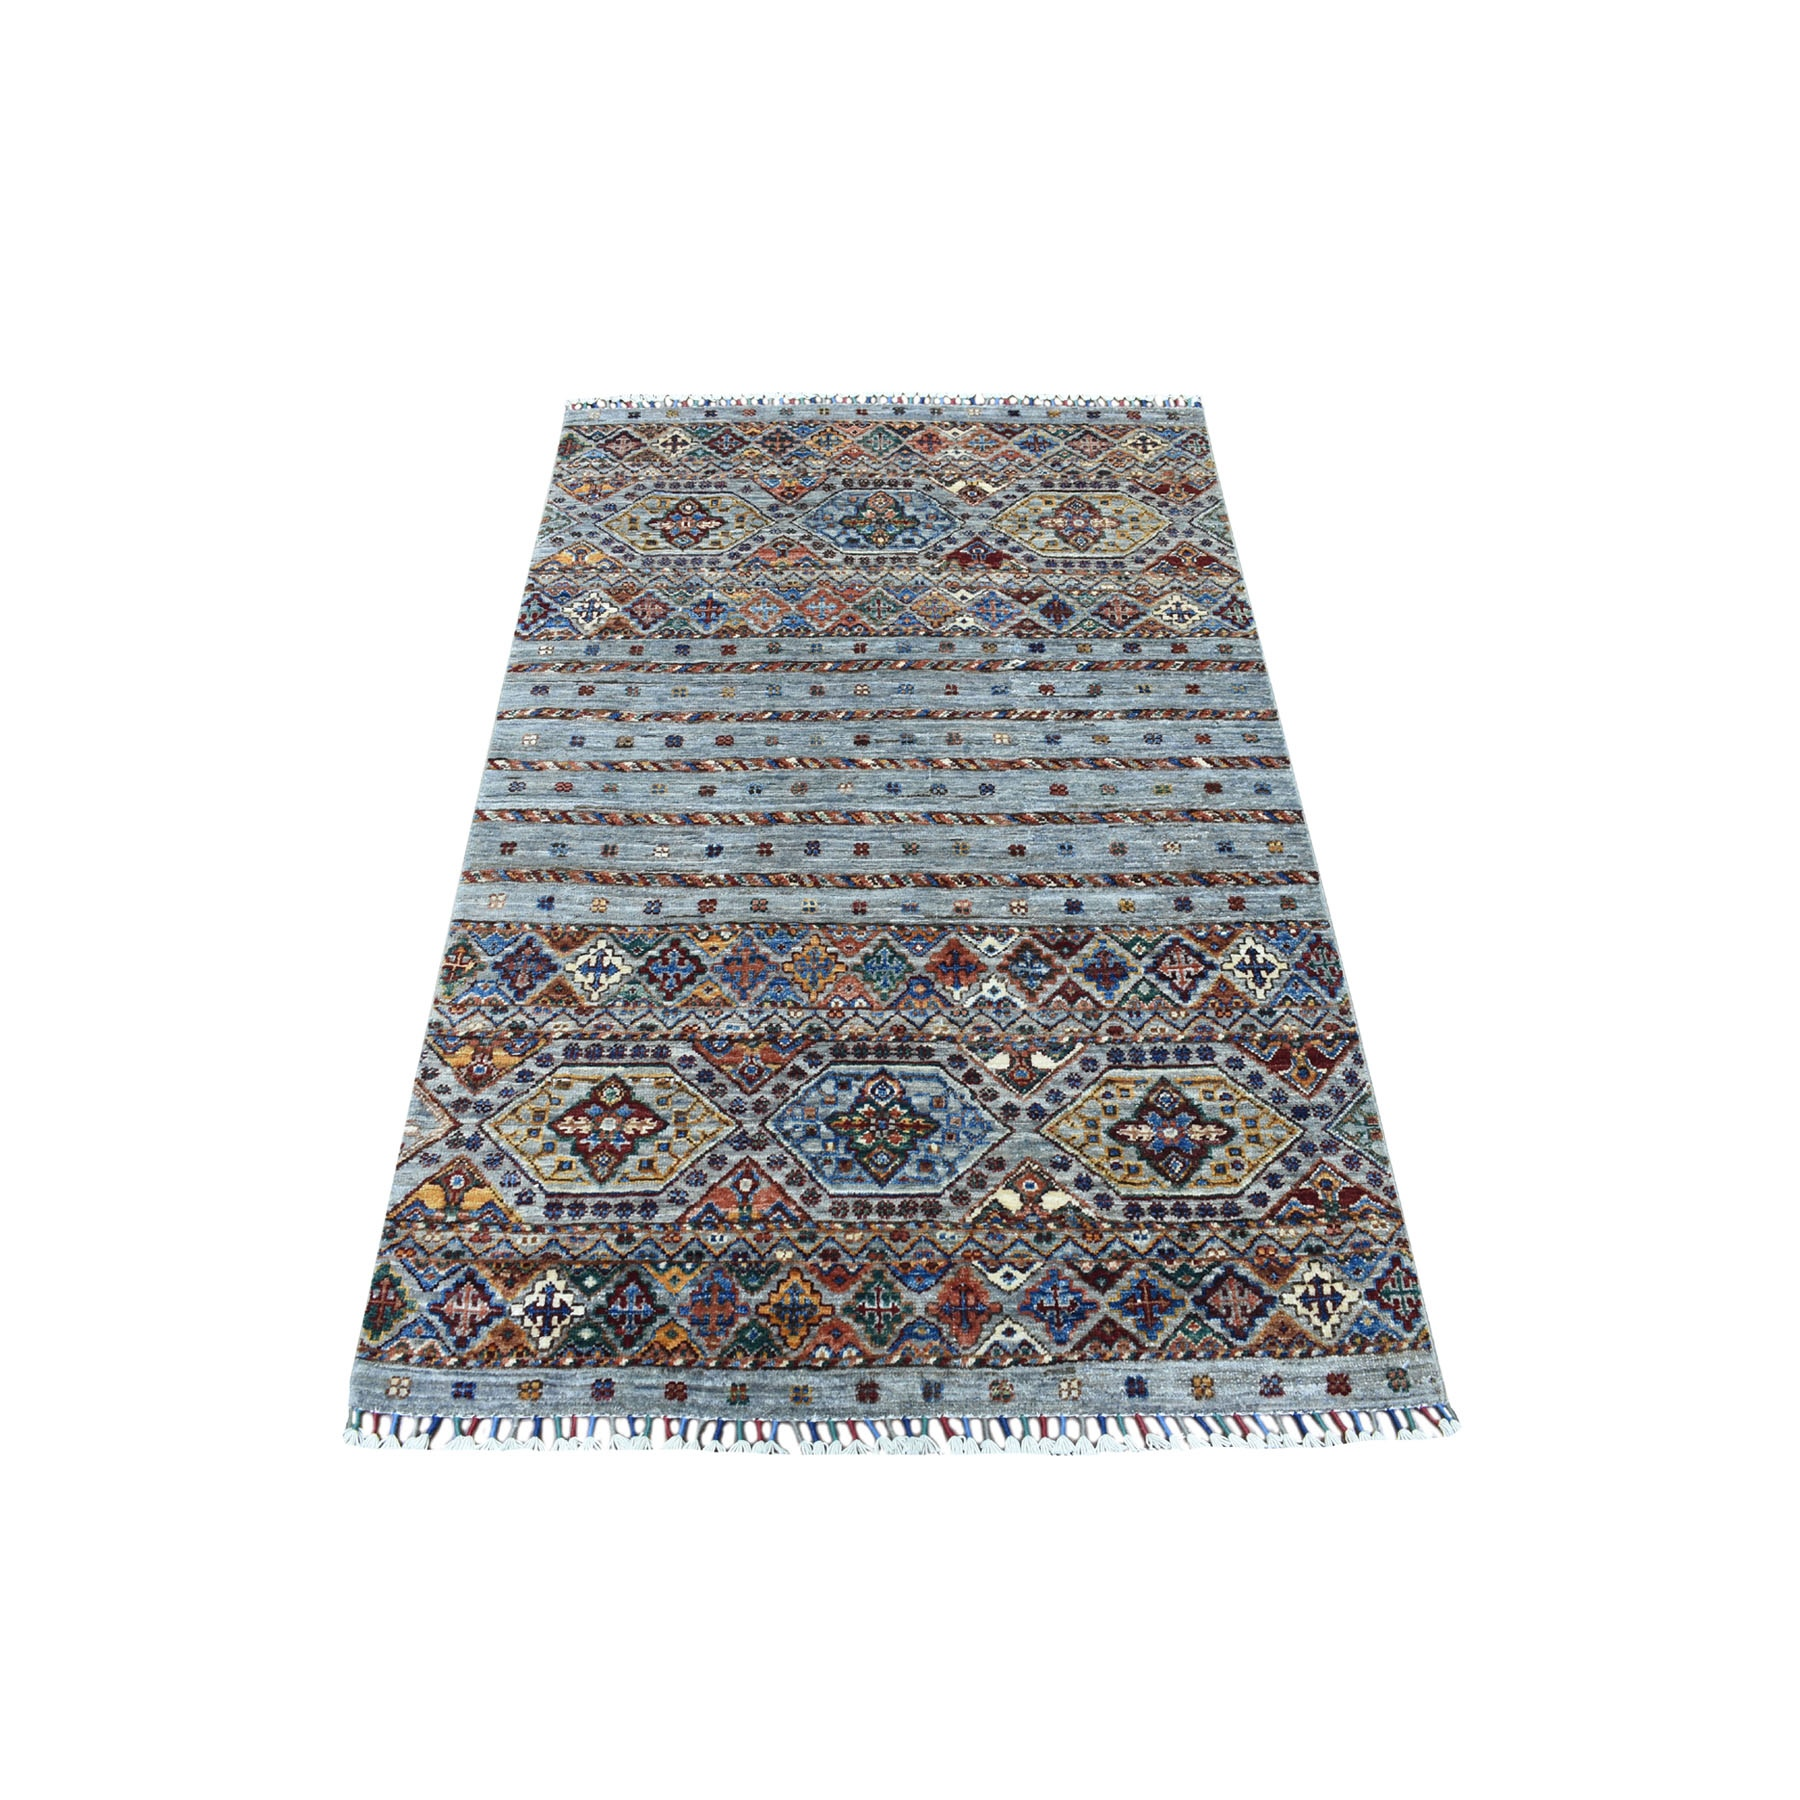 "3'4""x5'3"" Pure Wool Gray With Colorful Tassles Hand Knotted Super Kazak Khorjin Design Ethnic Oriental Rug"